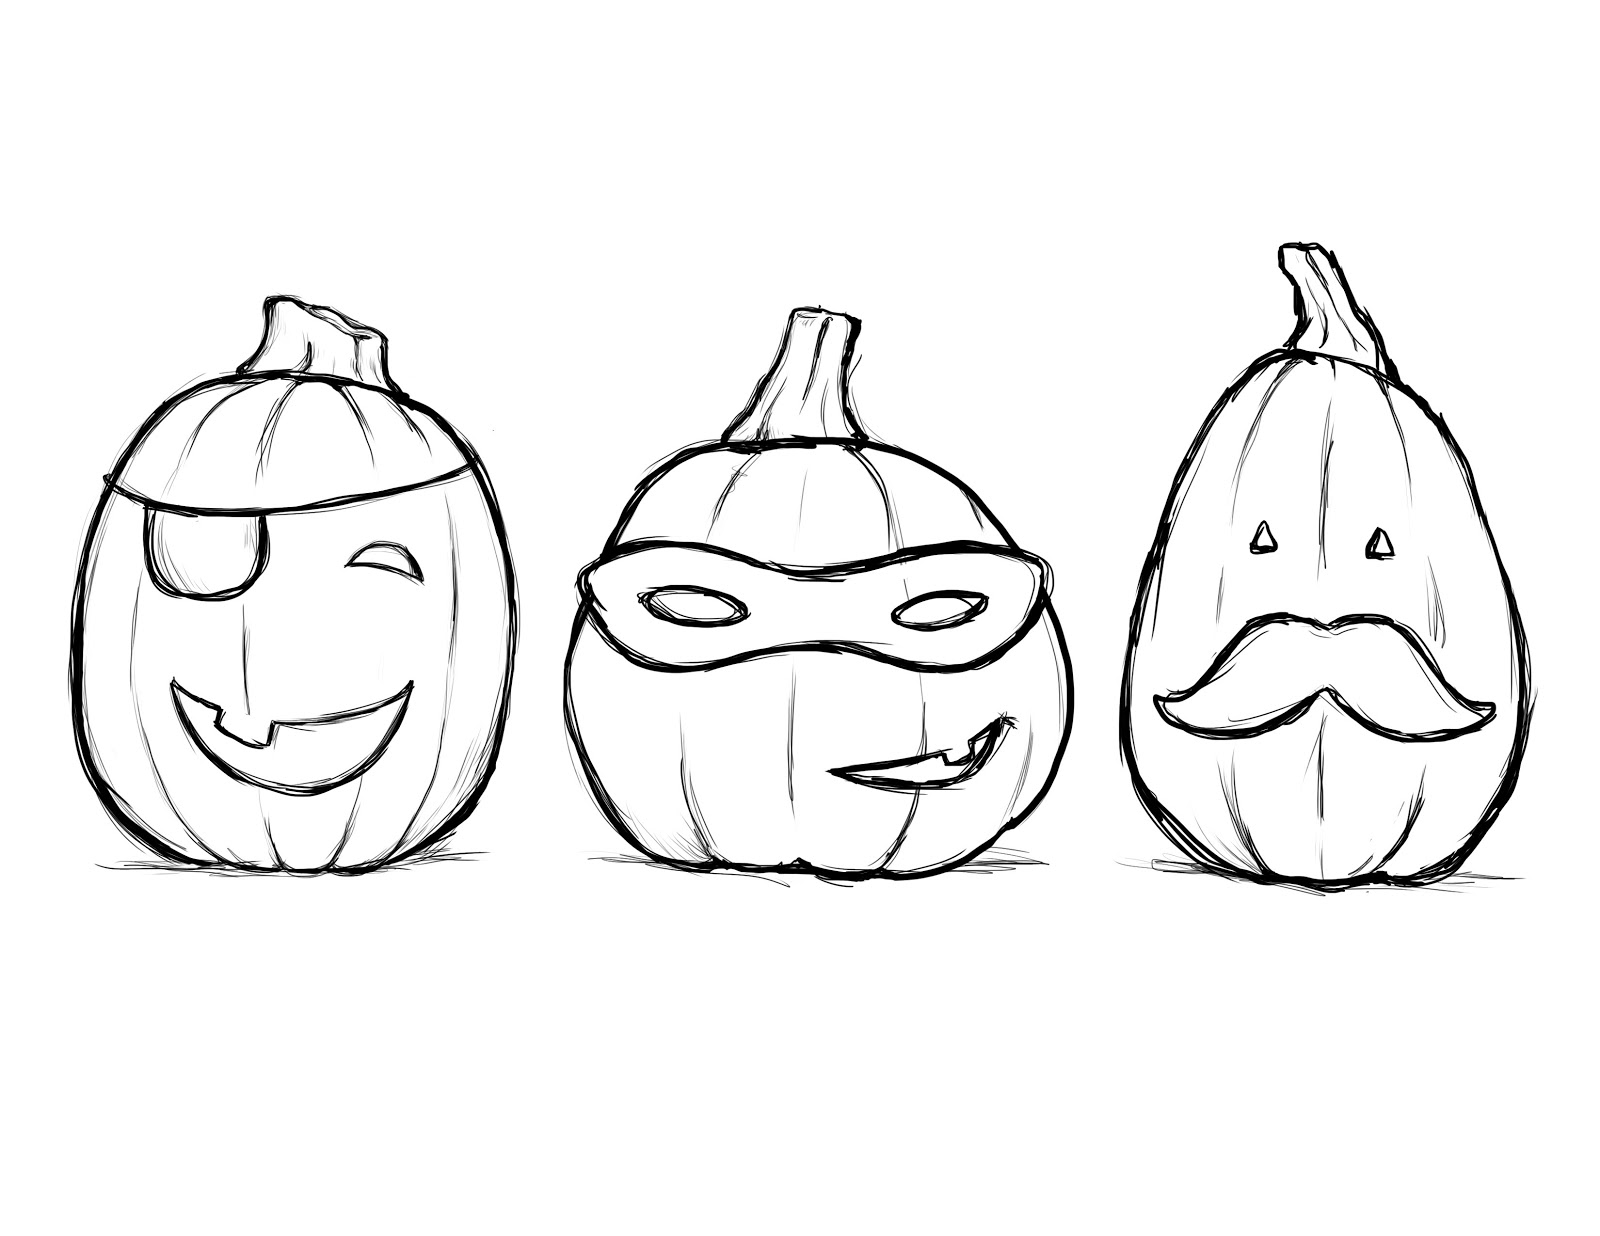 pumpkin colouring free printable pumpkin coloring pages for kids cool2bkids colouring pumpkin